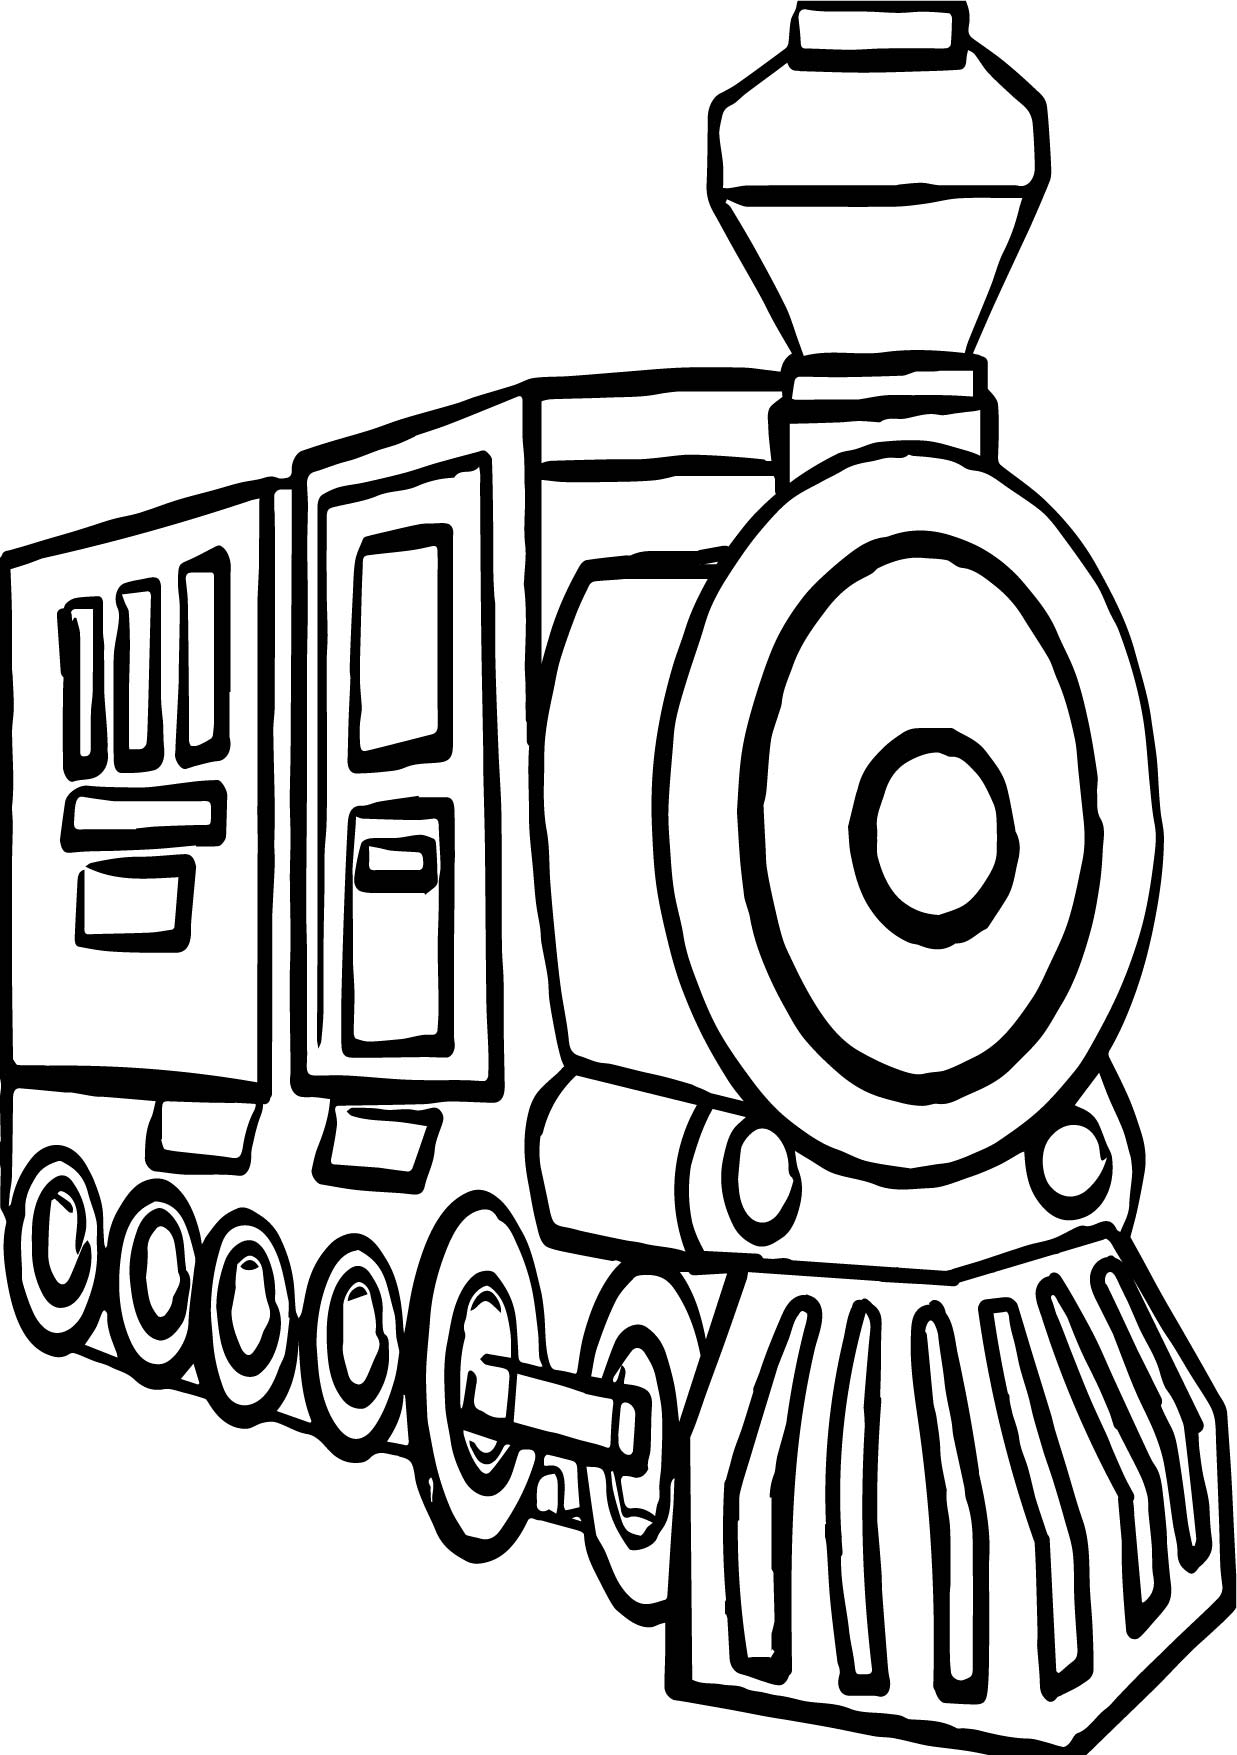 Go Train Coloring Pages